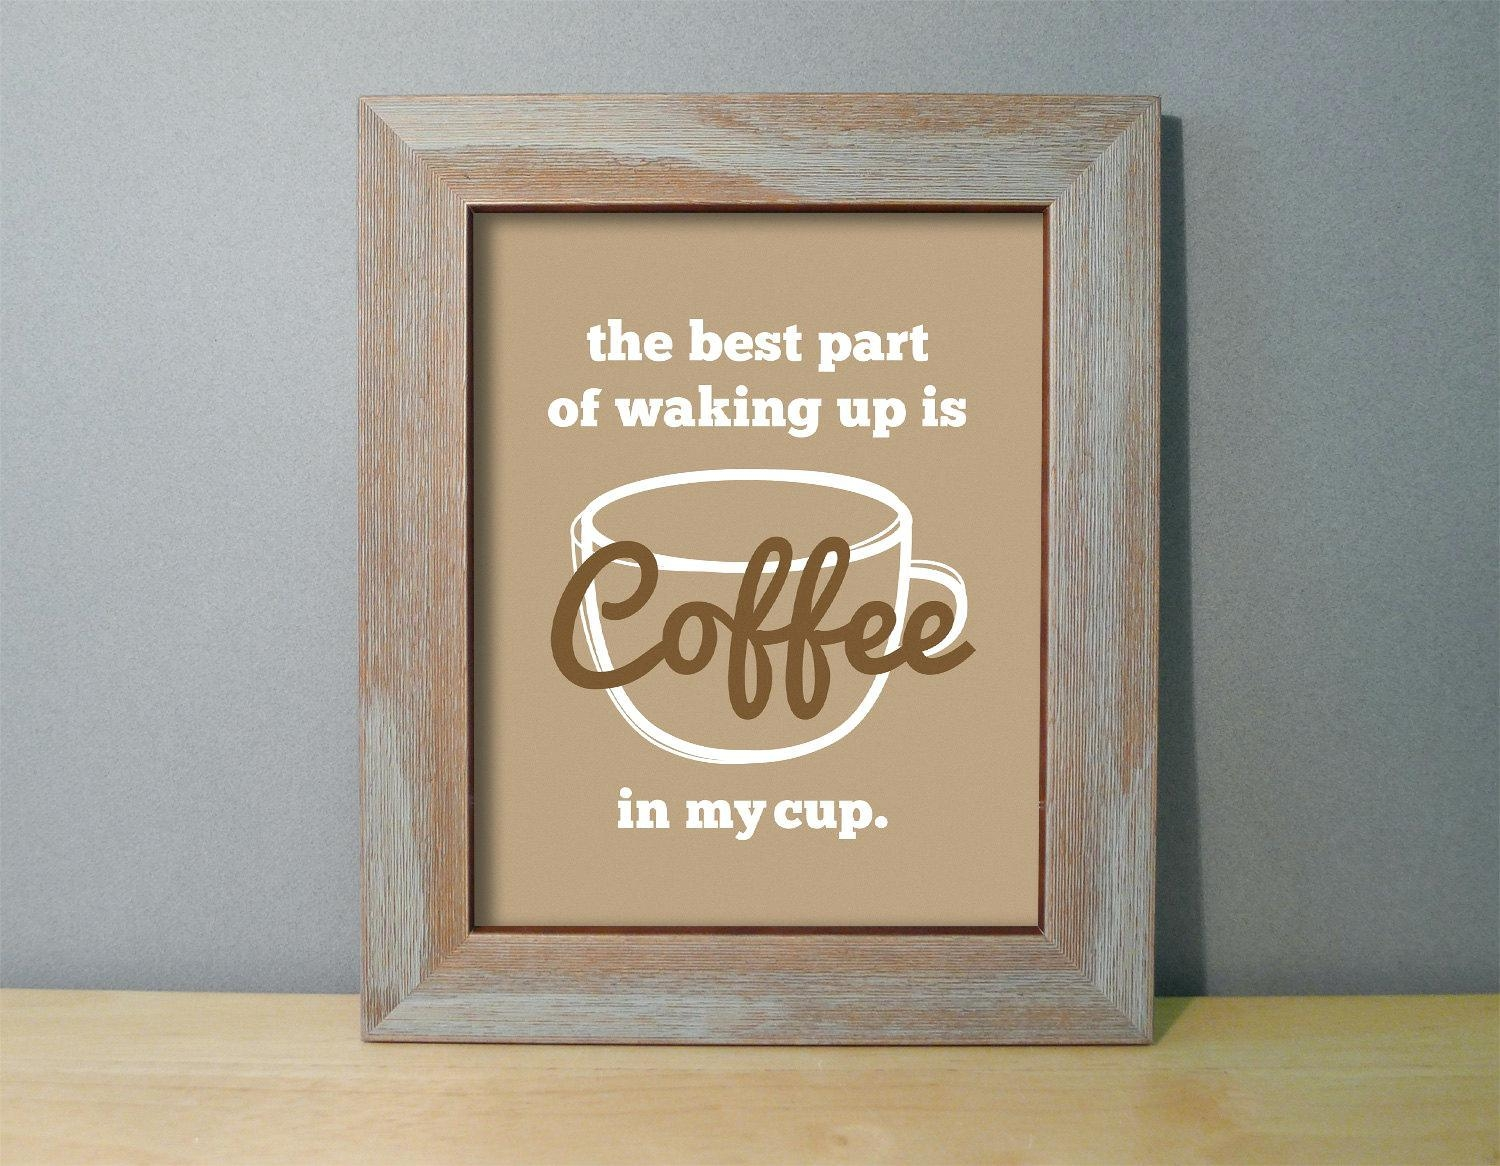 Wall Ideas : Coffee Cup Metal Wall Art 3D Metal Coffee Cup Wall In Metal Wall Art Coffee Theme (Image 15 of 20)